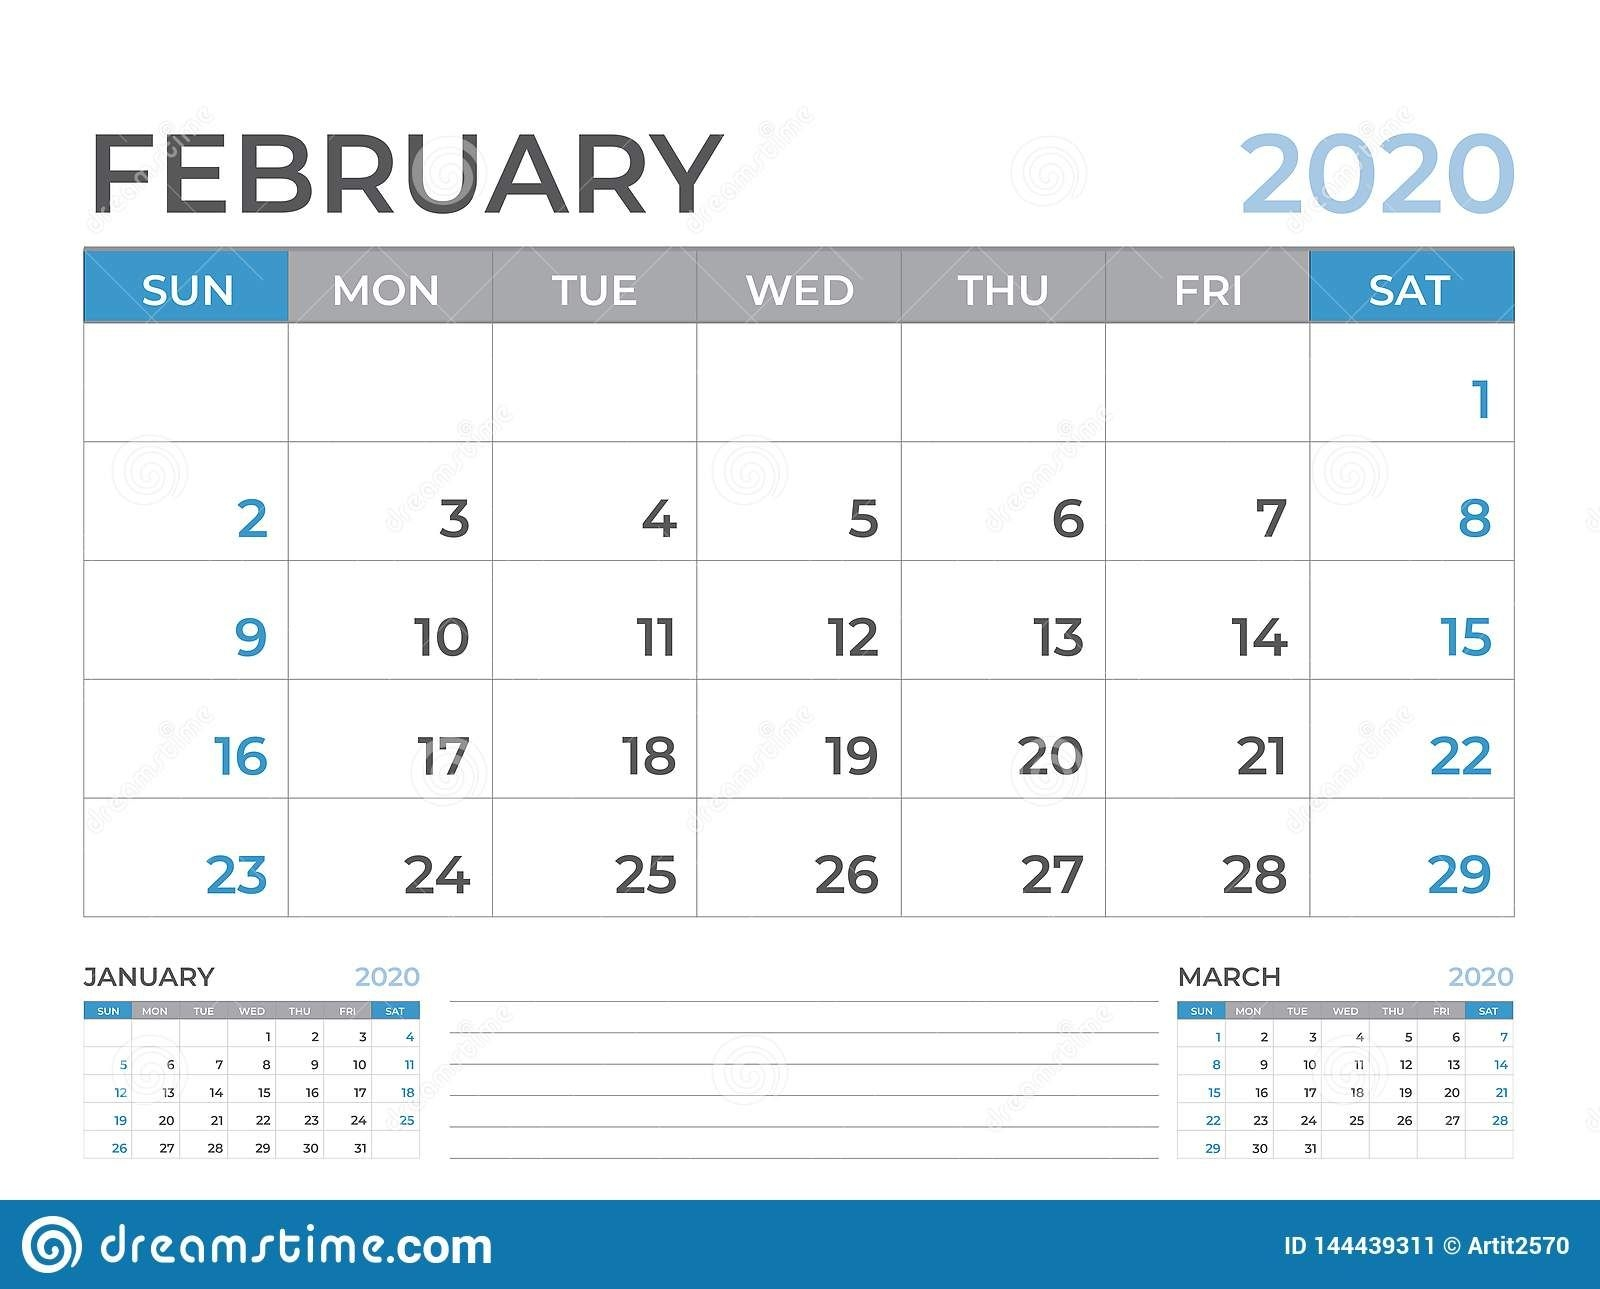 February 2020 Calendar Template, Desk Calendar Layout Size 8